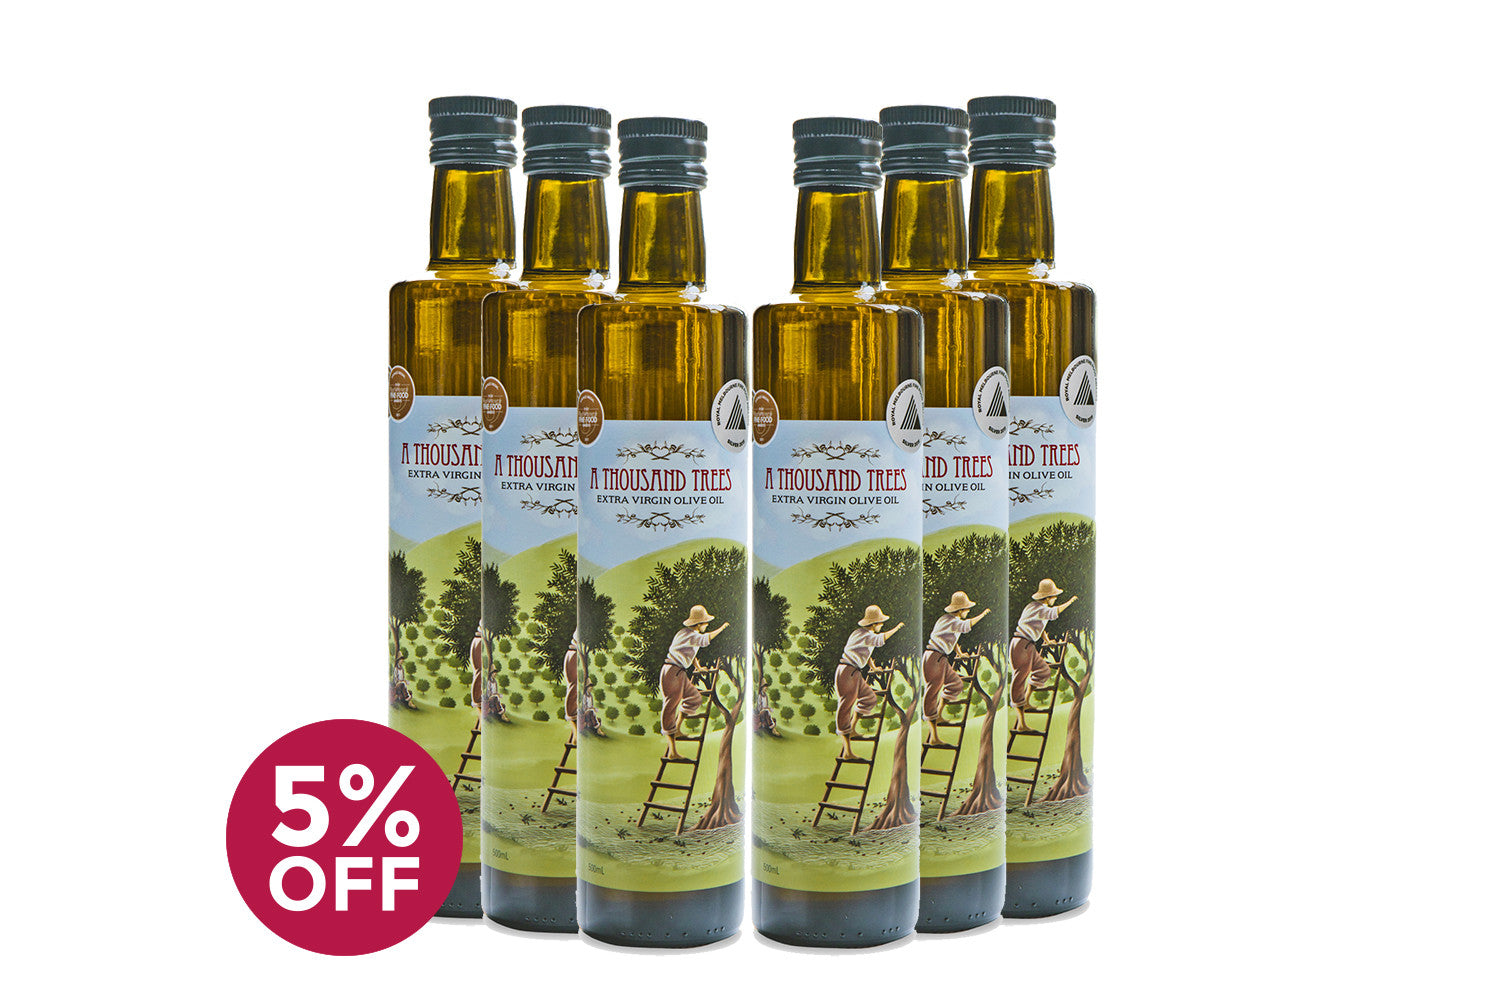 500ML Extra Virgin Olive Oil Six Pack